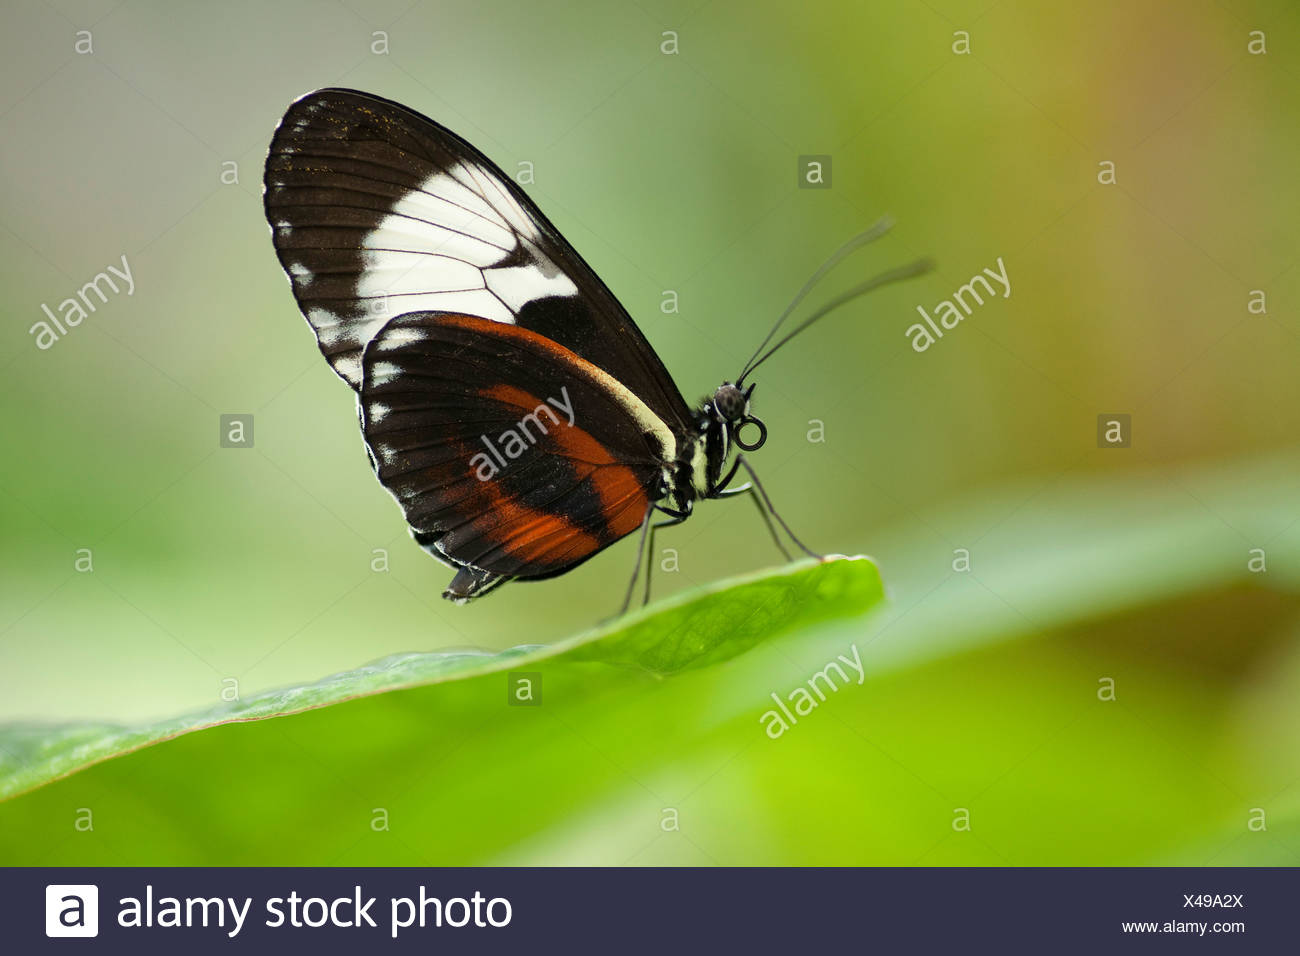 Cydno Longwing Butterfly (Heliconius cydno) sitting on a leaf, captive, native to Central America and South America - Stock Image